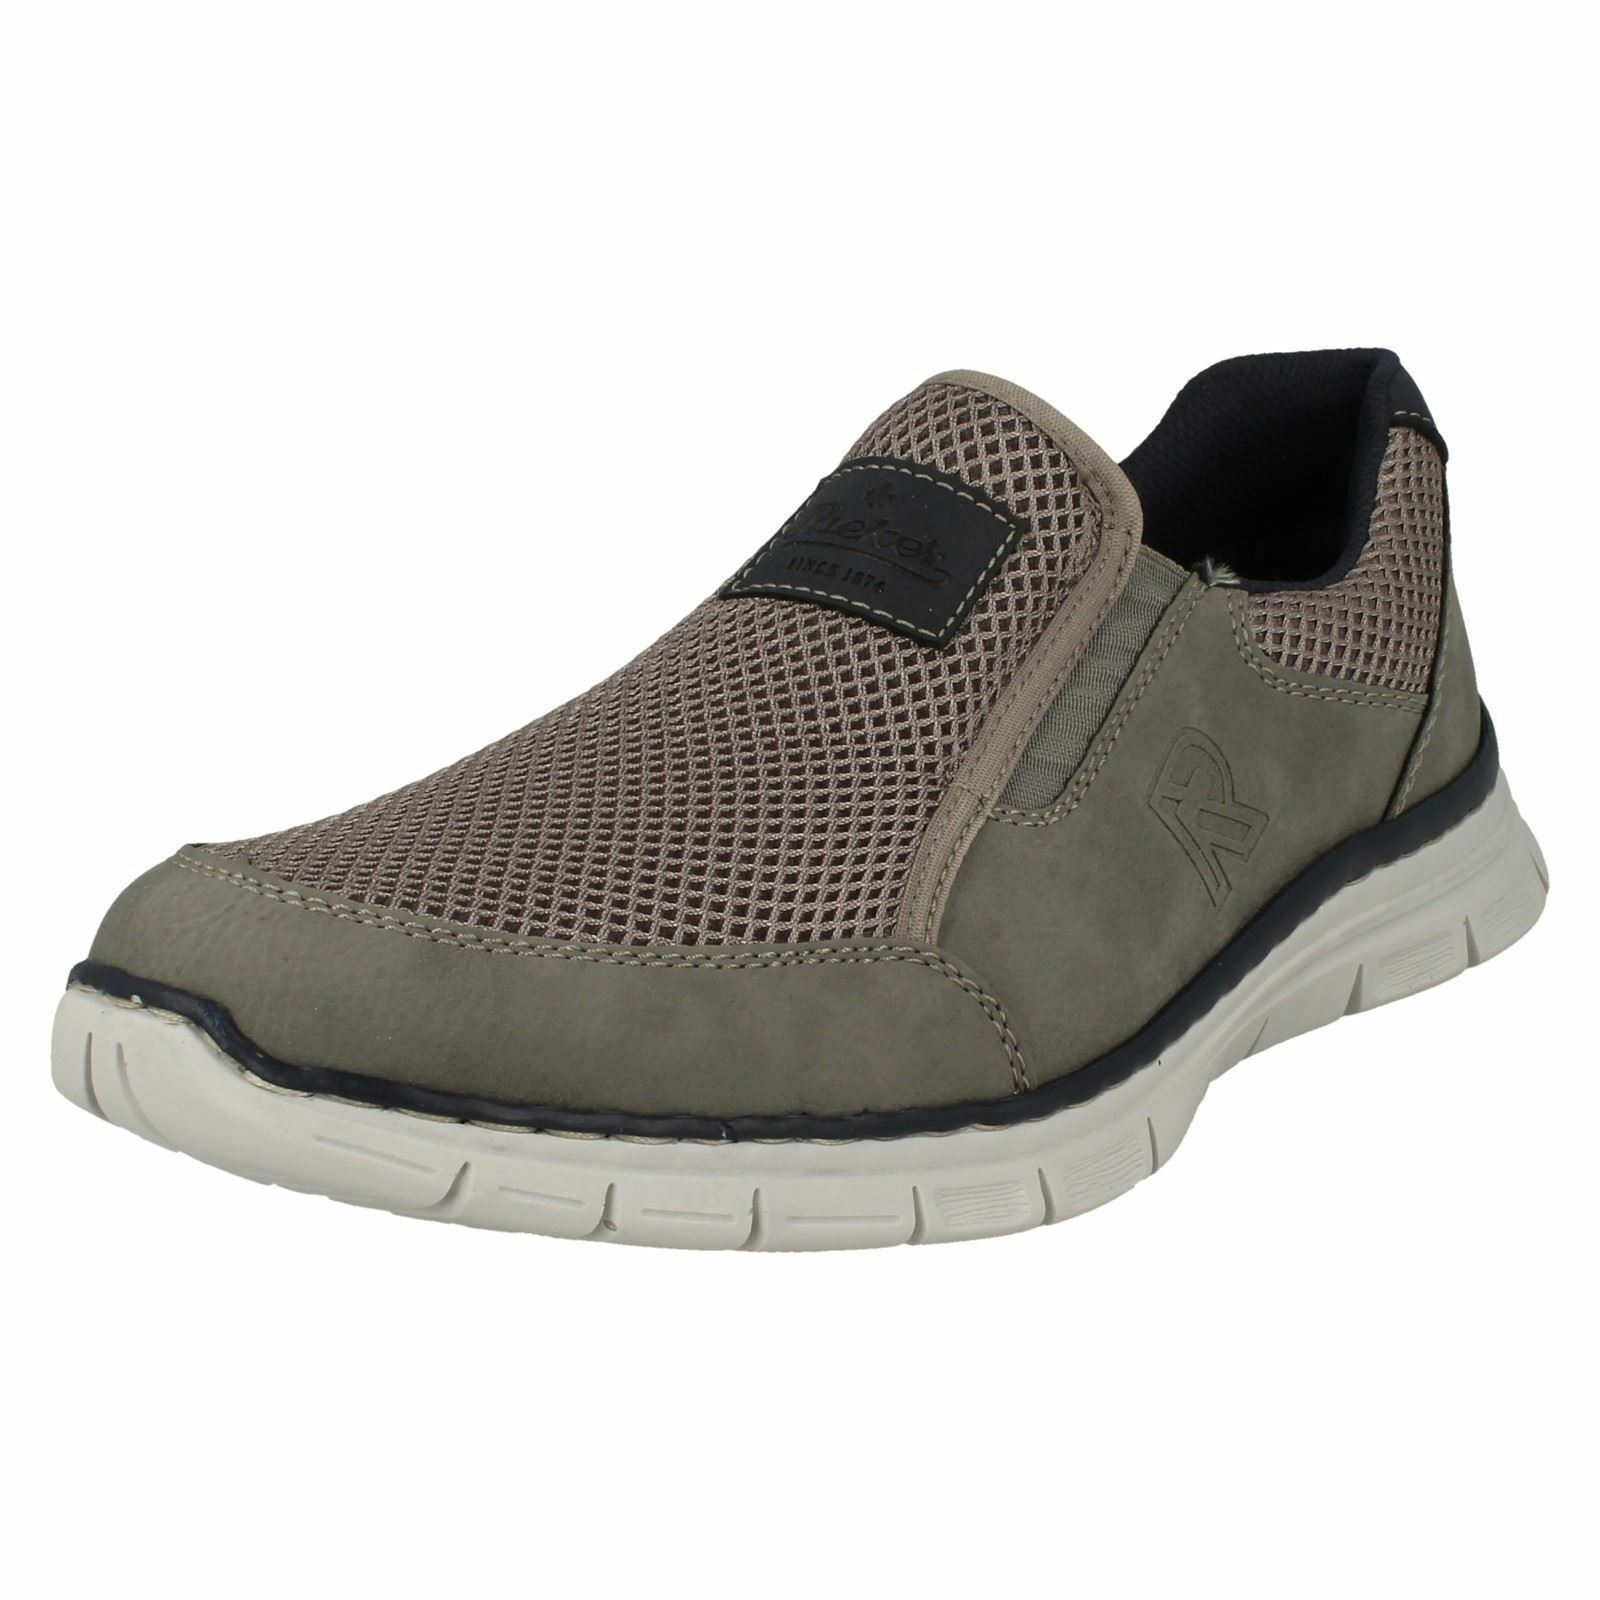 Herren Rieker B4873 On Grau Synthetic Casual Slip On B4873 Schuhes b7ea7a